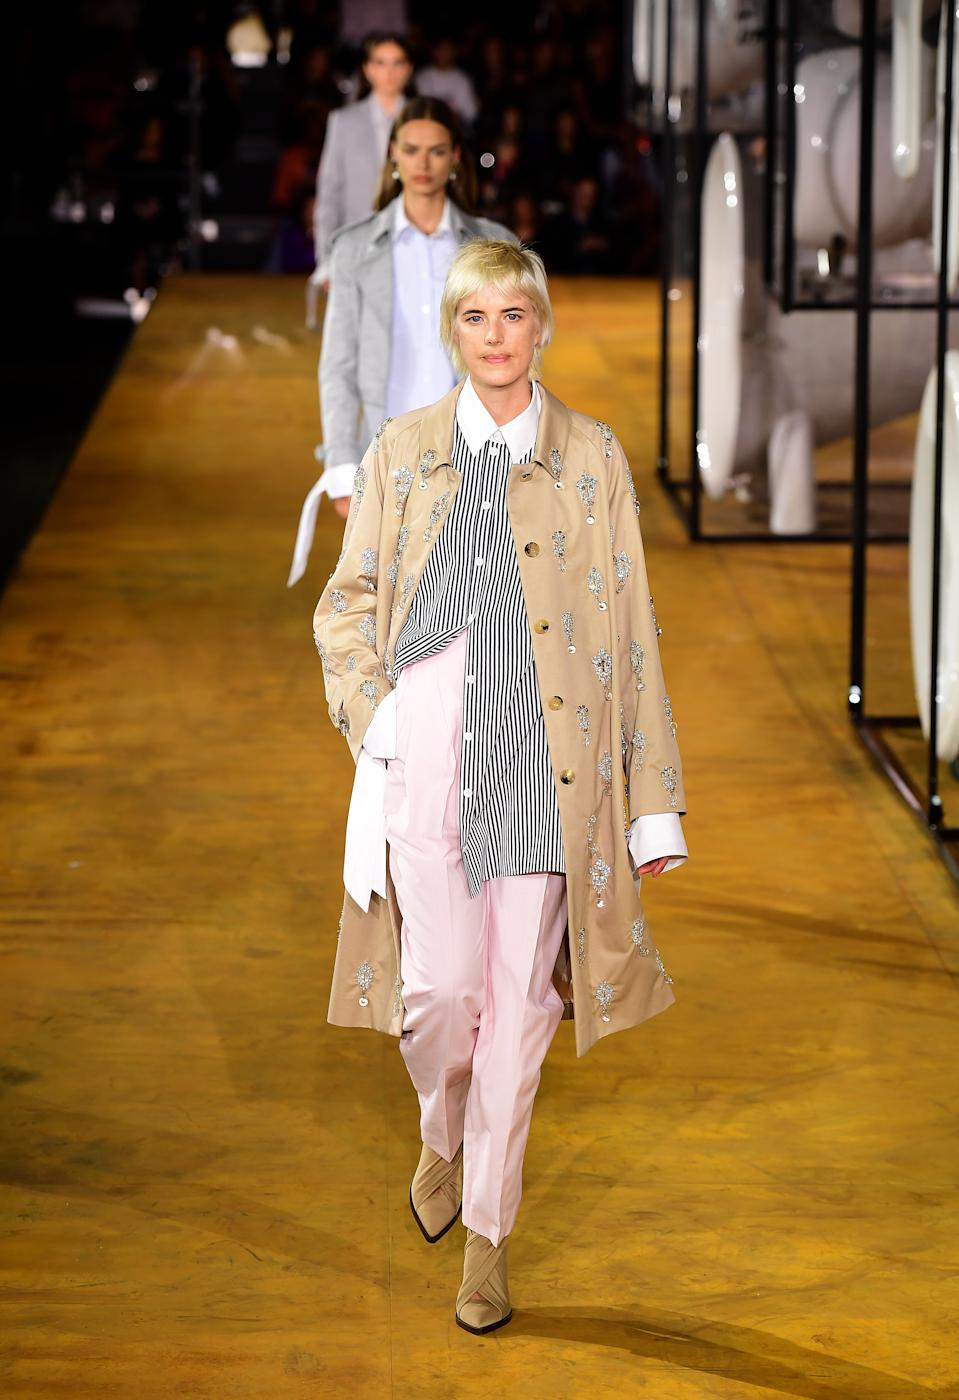 Agyness Deyn walked the catwalk in pink trousers, a striped skirt and trench coat. [Photo: PA]